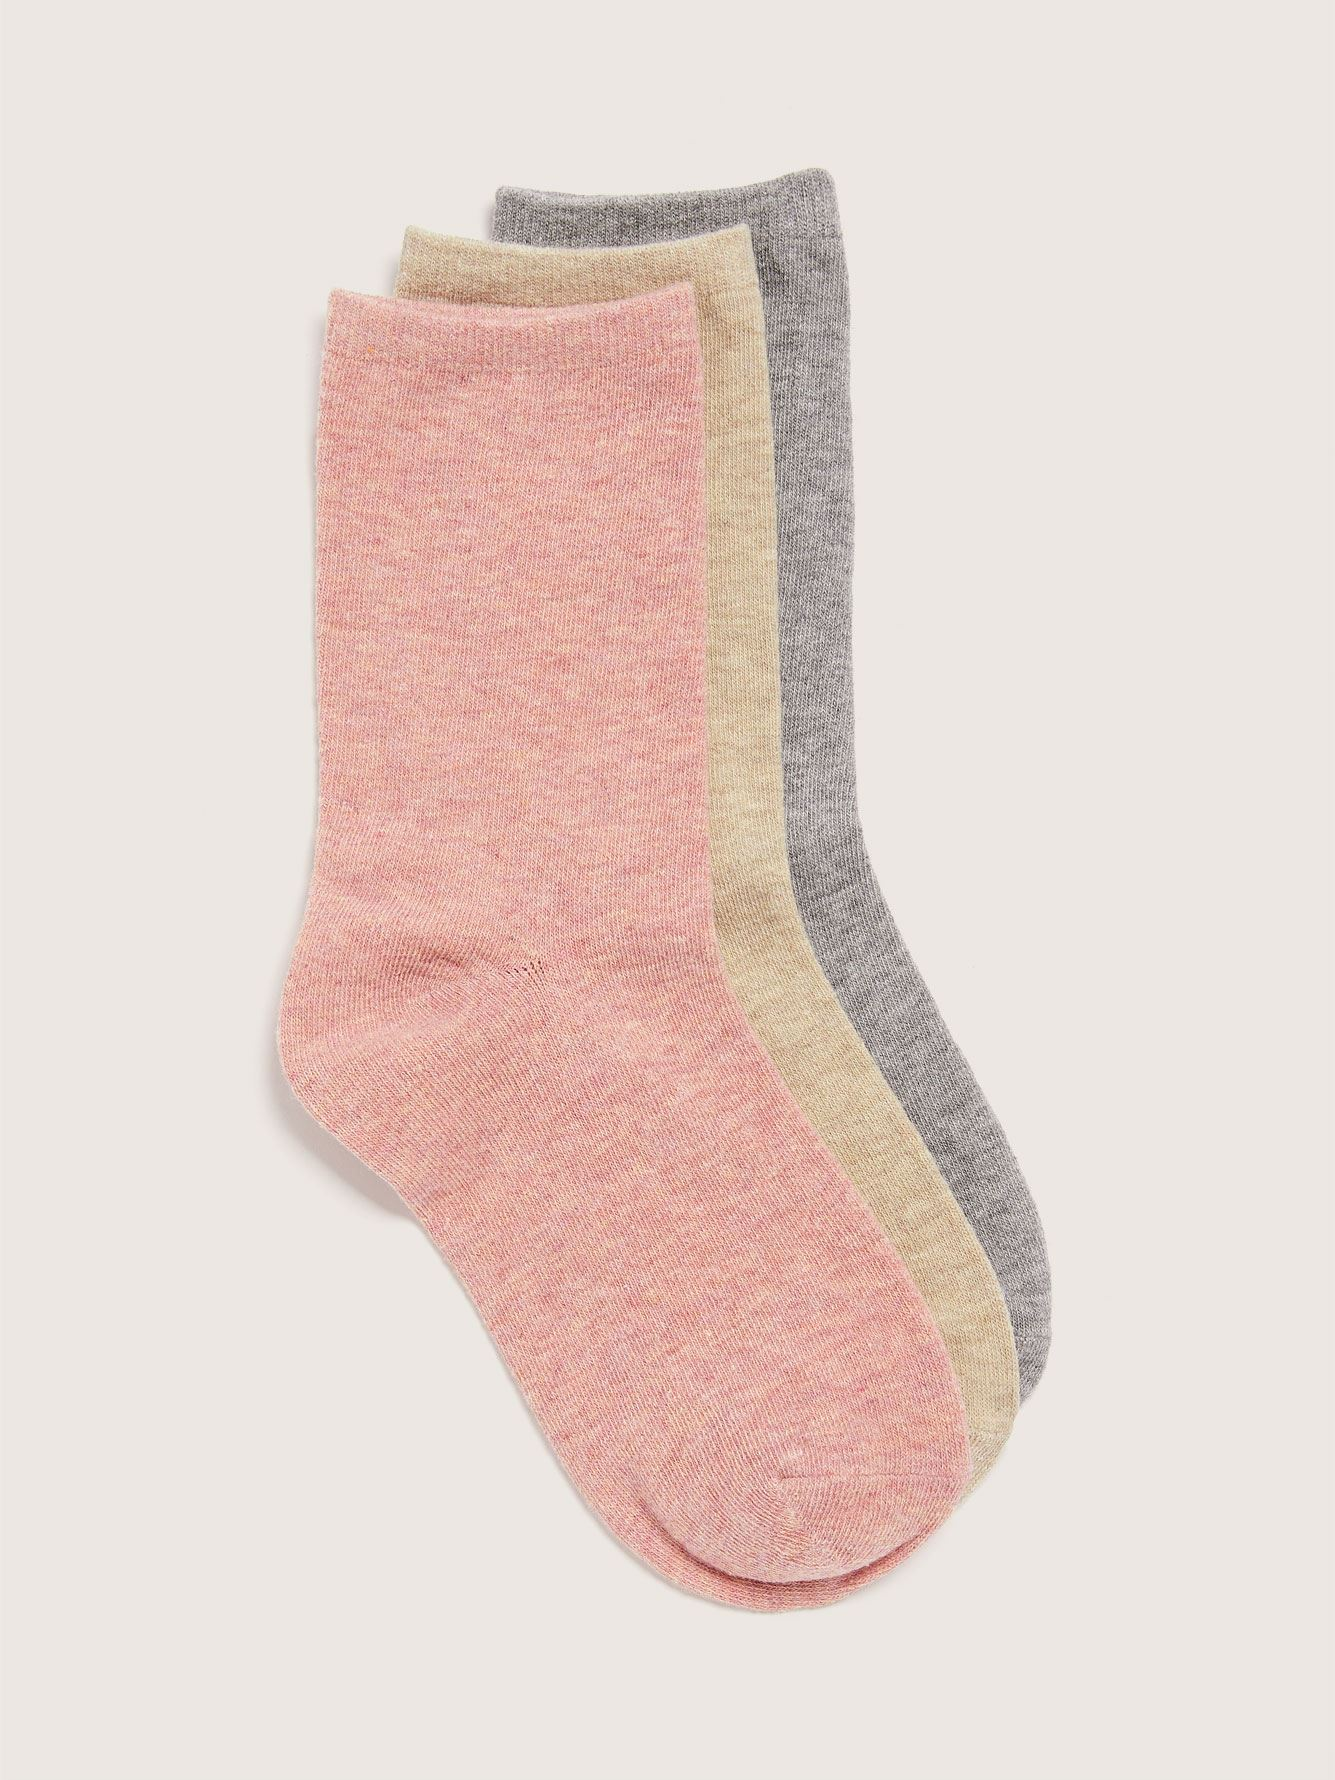 Cotton Fashion Socks, Pack of 3 - Addition Elle